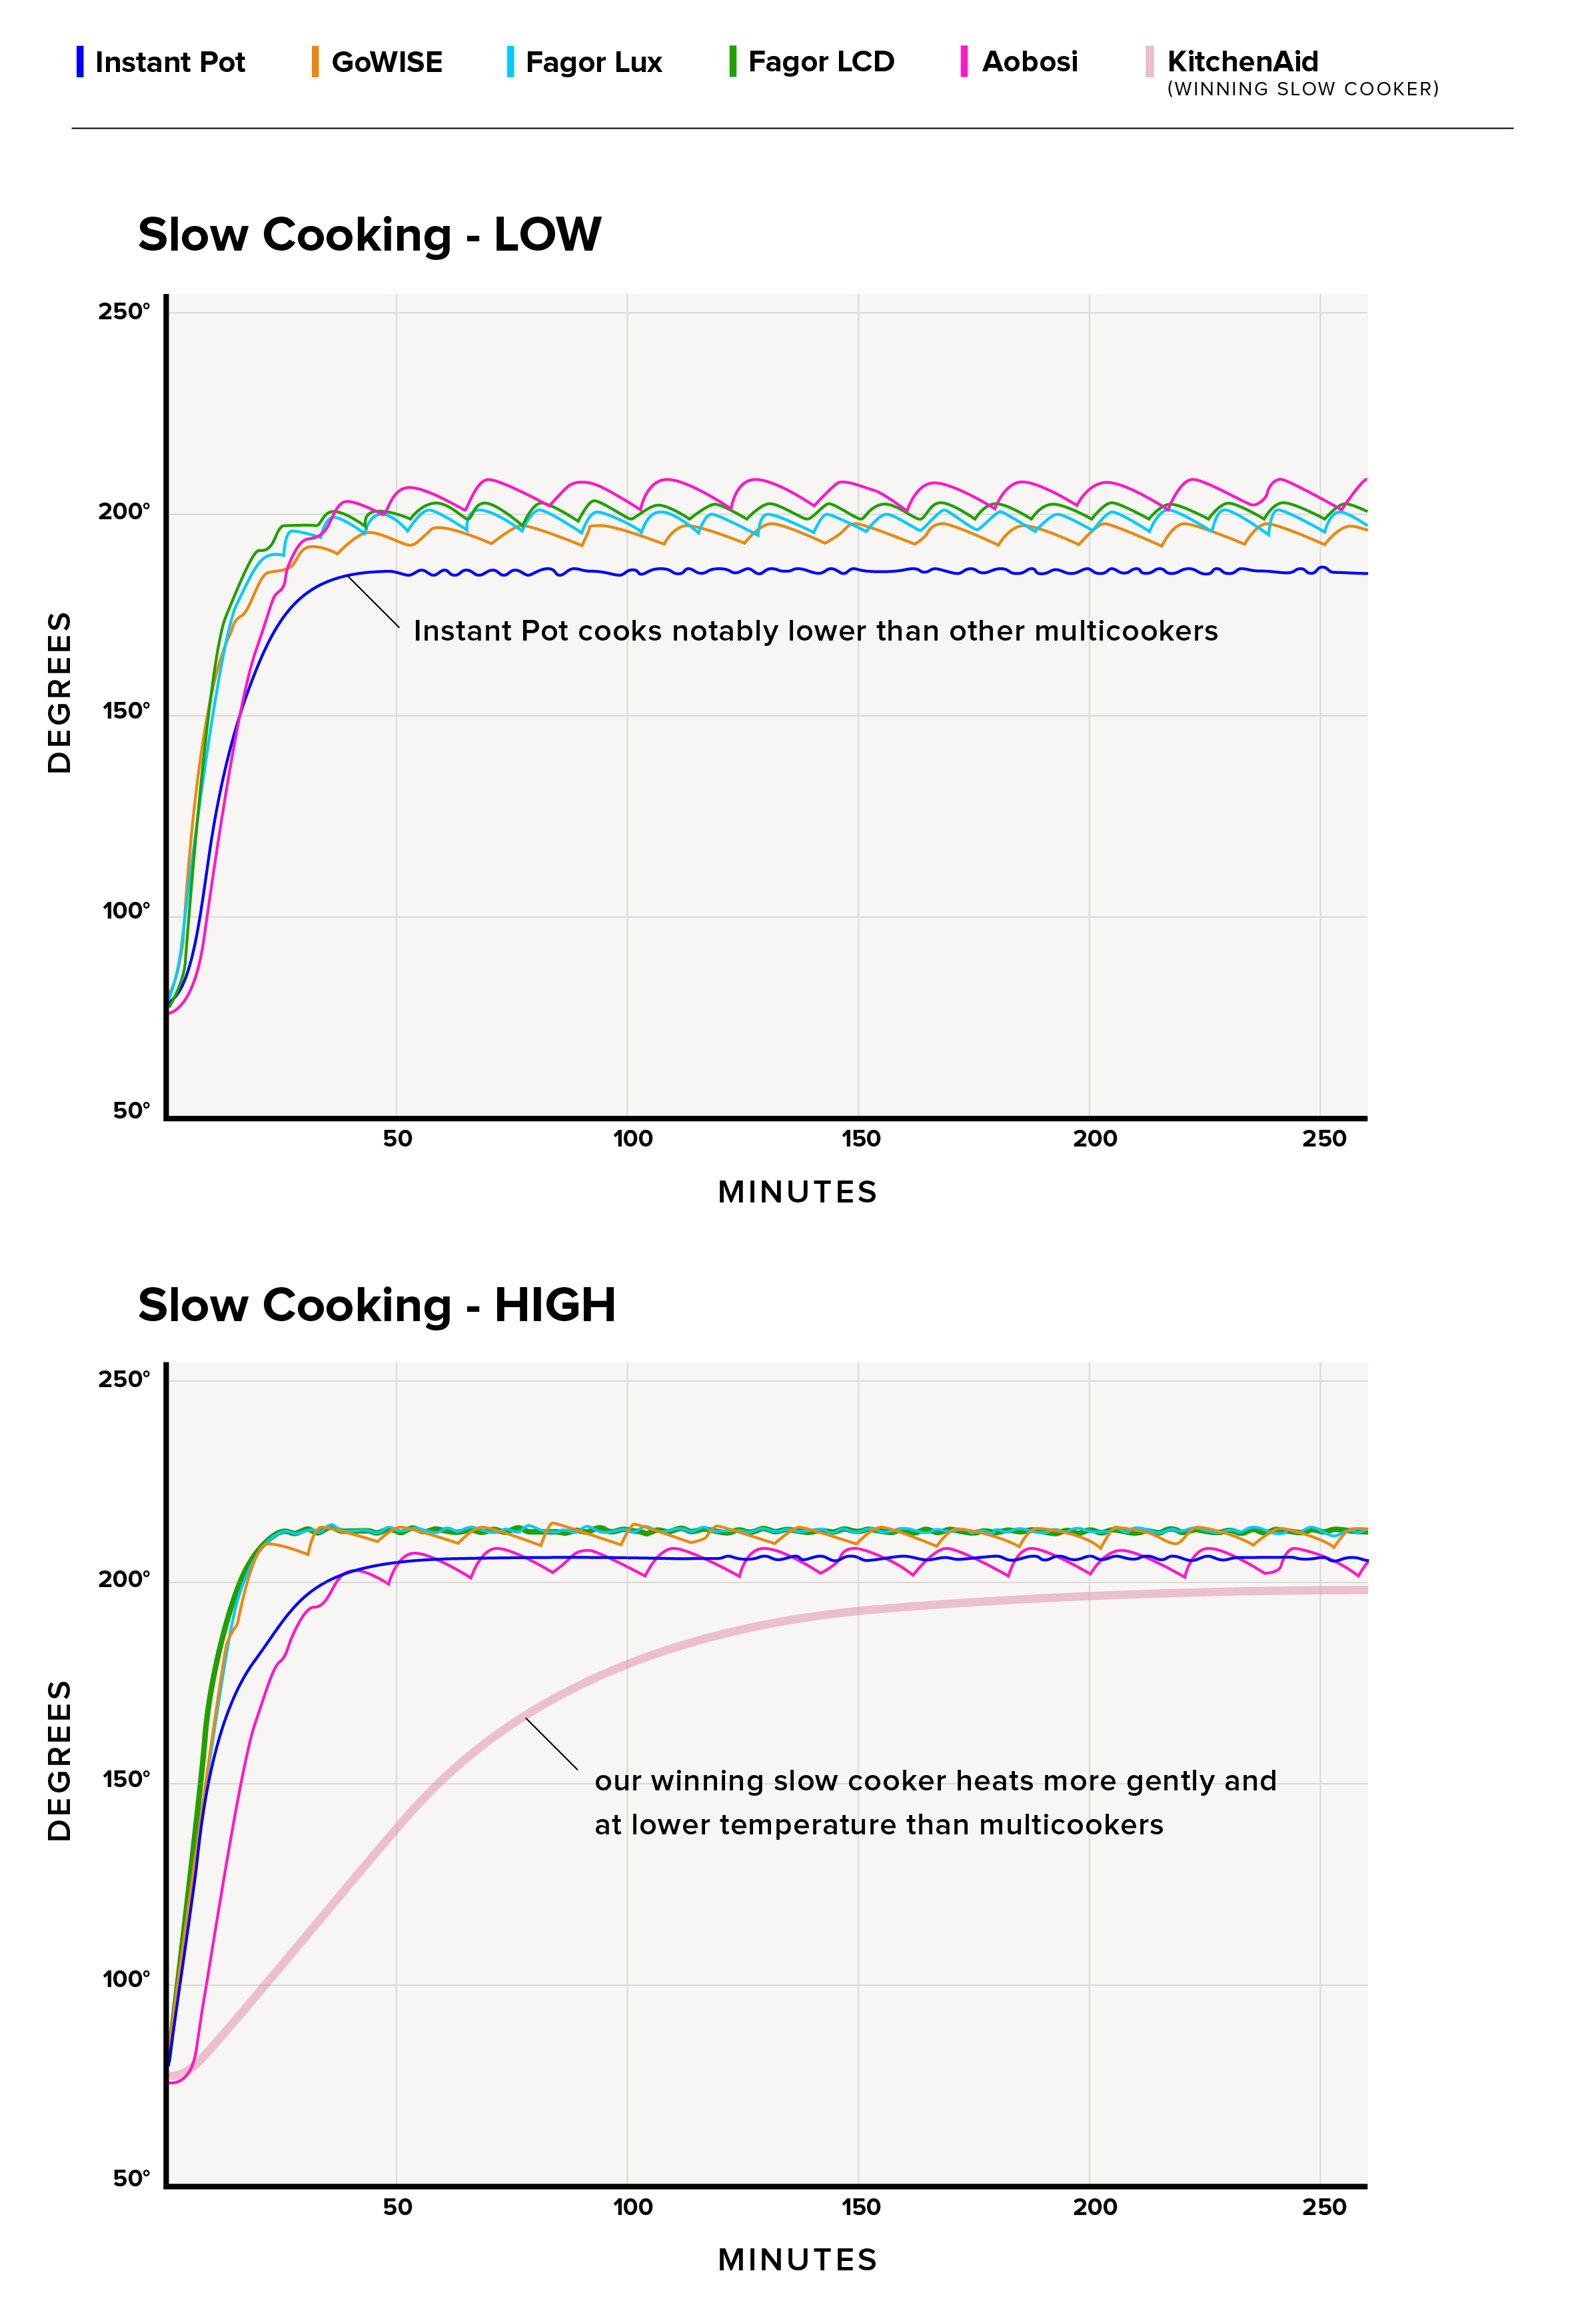 Aweinspiring Materials Science Andengineering At Testing Multicookers Pressure To Figure Out Why Instant Pot Was Slower Than Or Wecontacted Robert Professor nice food Target Instant Pot